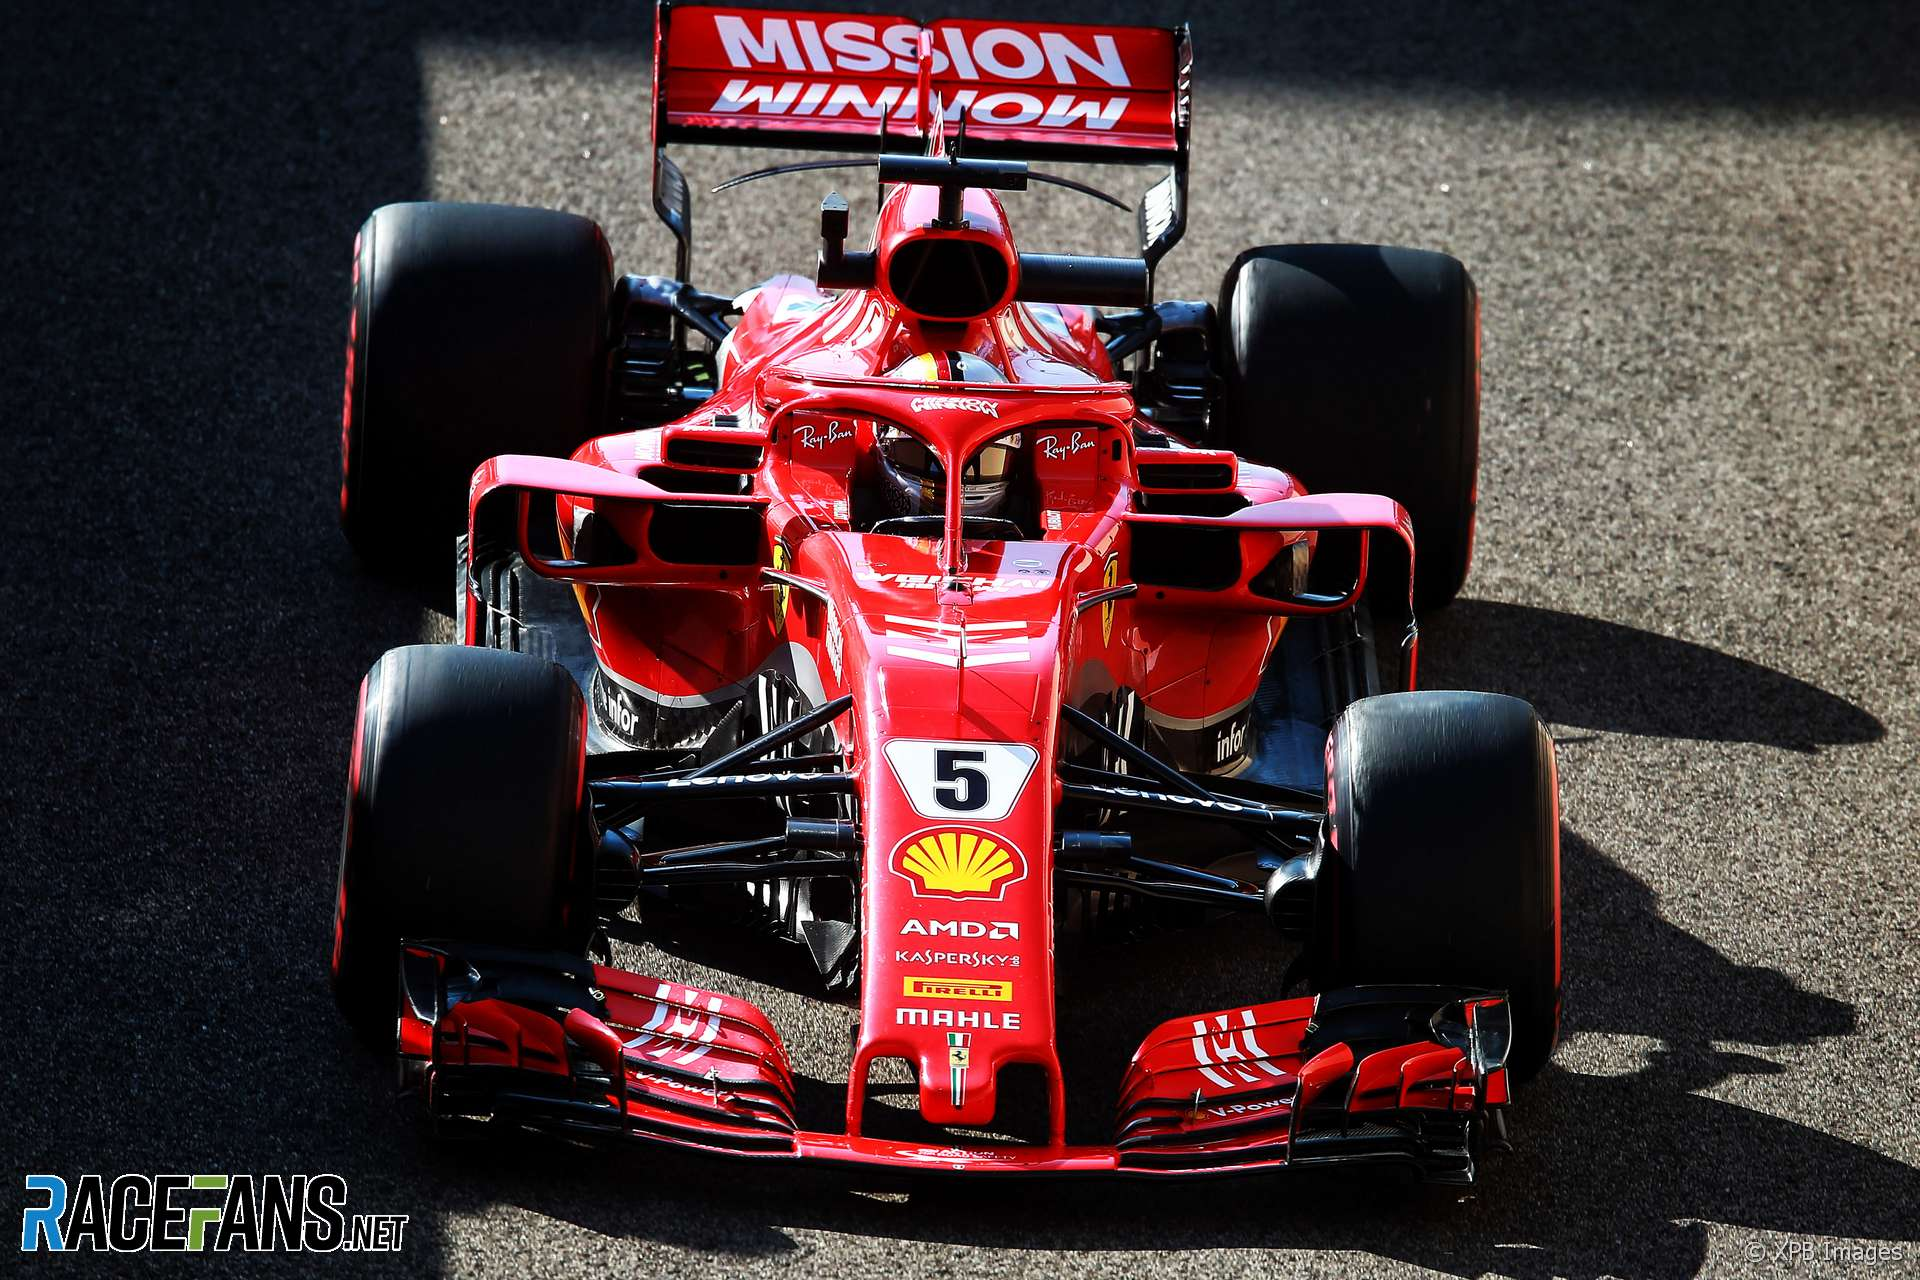 Ferrari sponsor Mission Winnow denies tobacco promotion